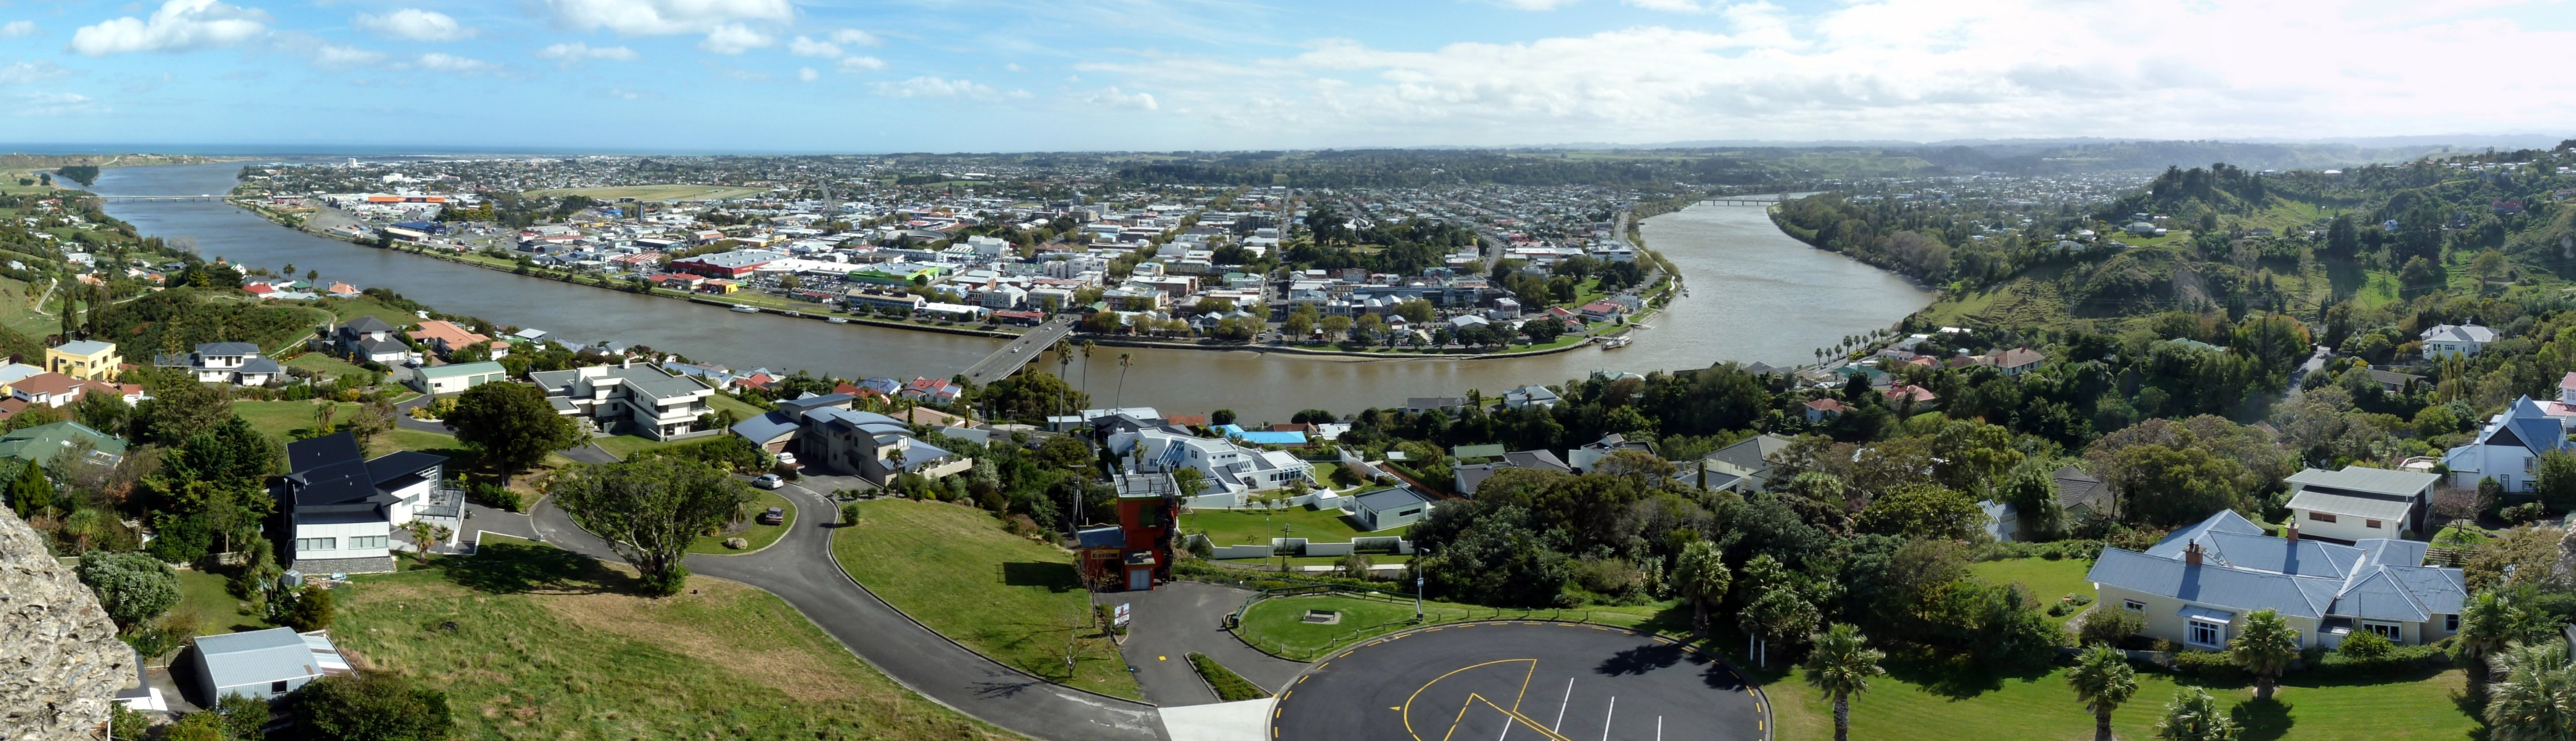 Wanganui New Zealand  city images : panoramic view of Wanganui, New Zealand, from the top of the War ...